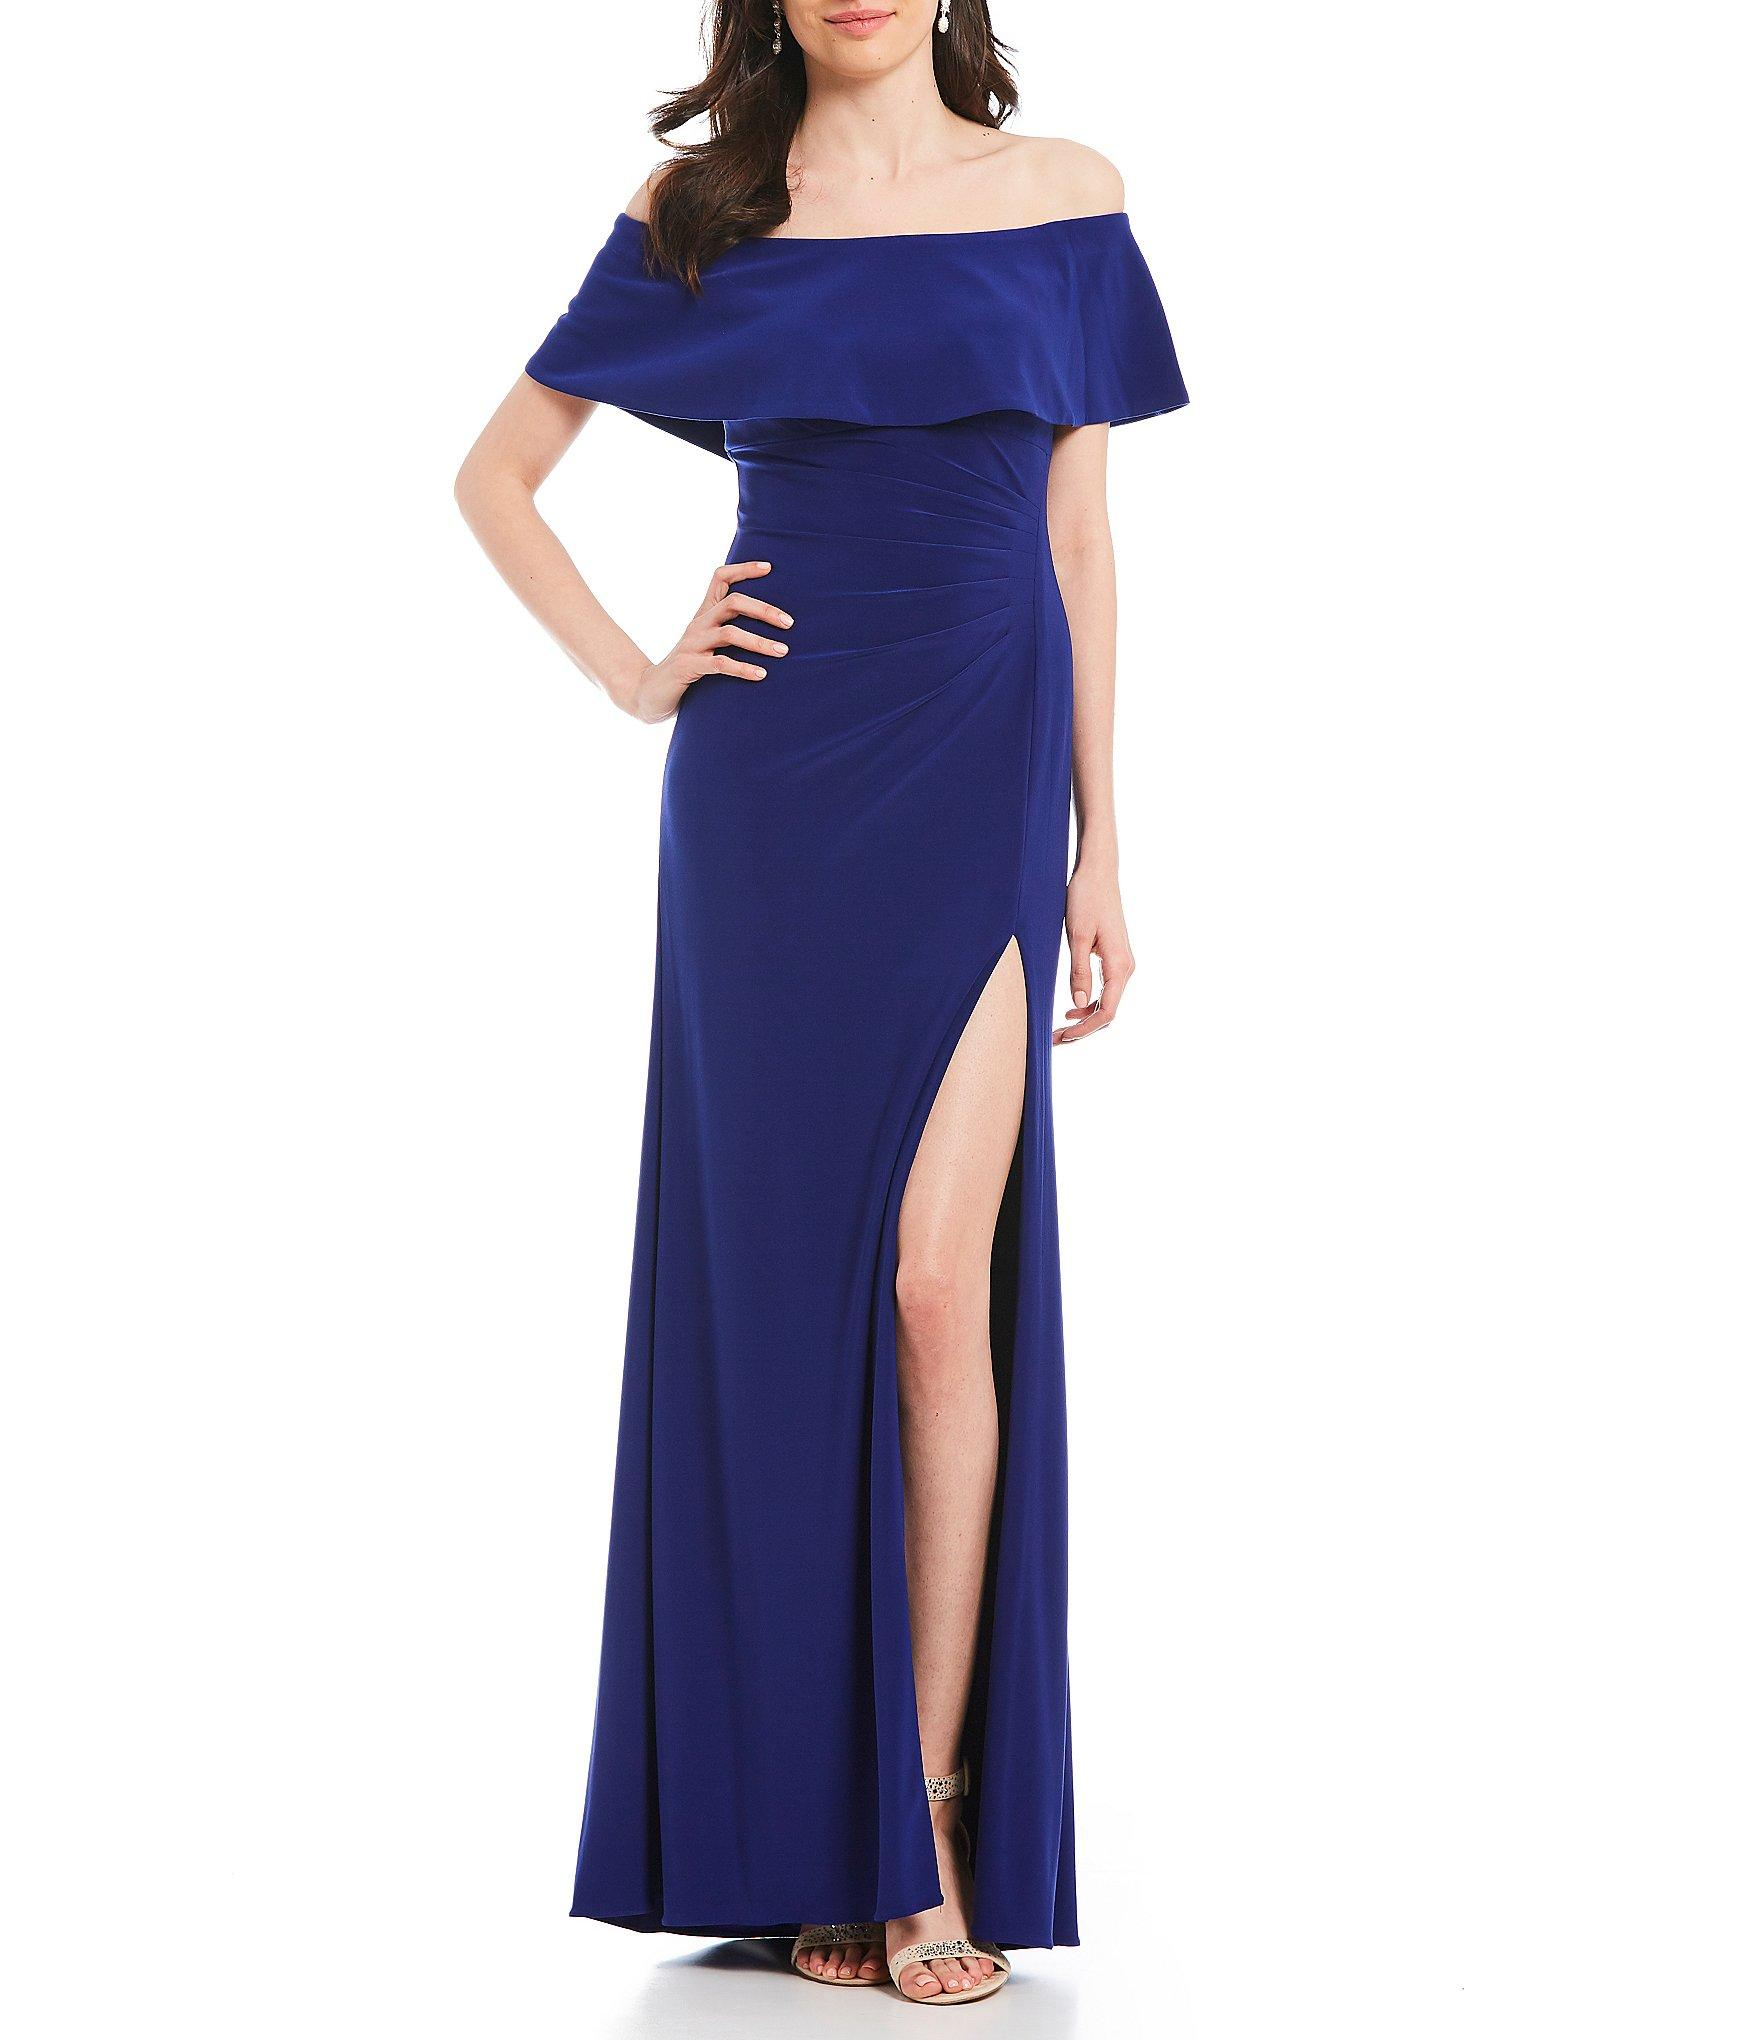 554f0433 Lyst - Xscape Off-the-shoulder Popover Front Slit Jersey Gown in Blue